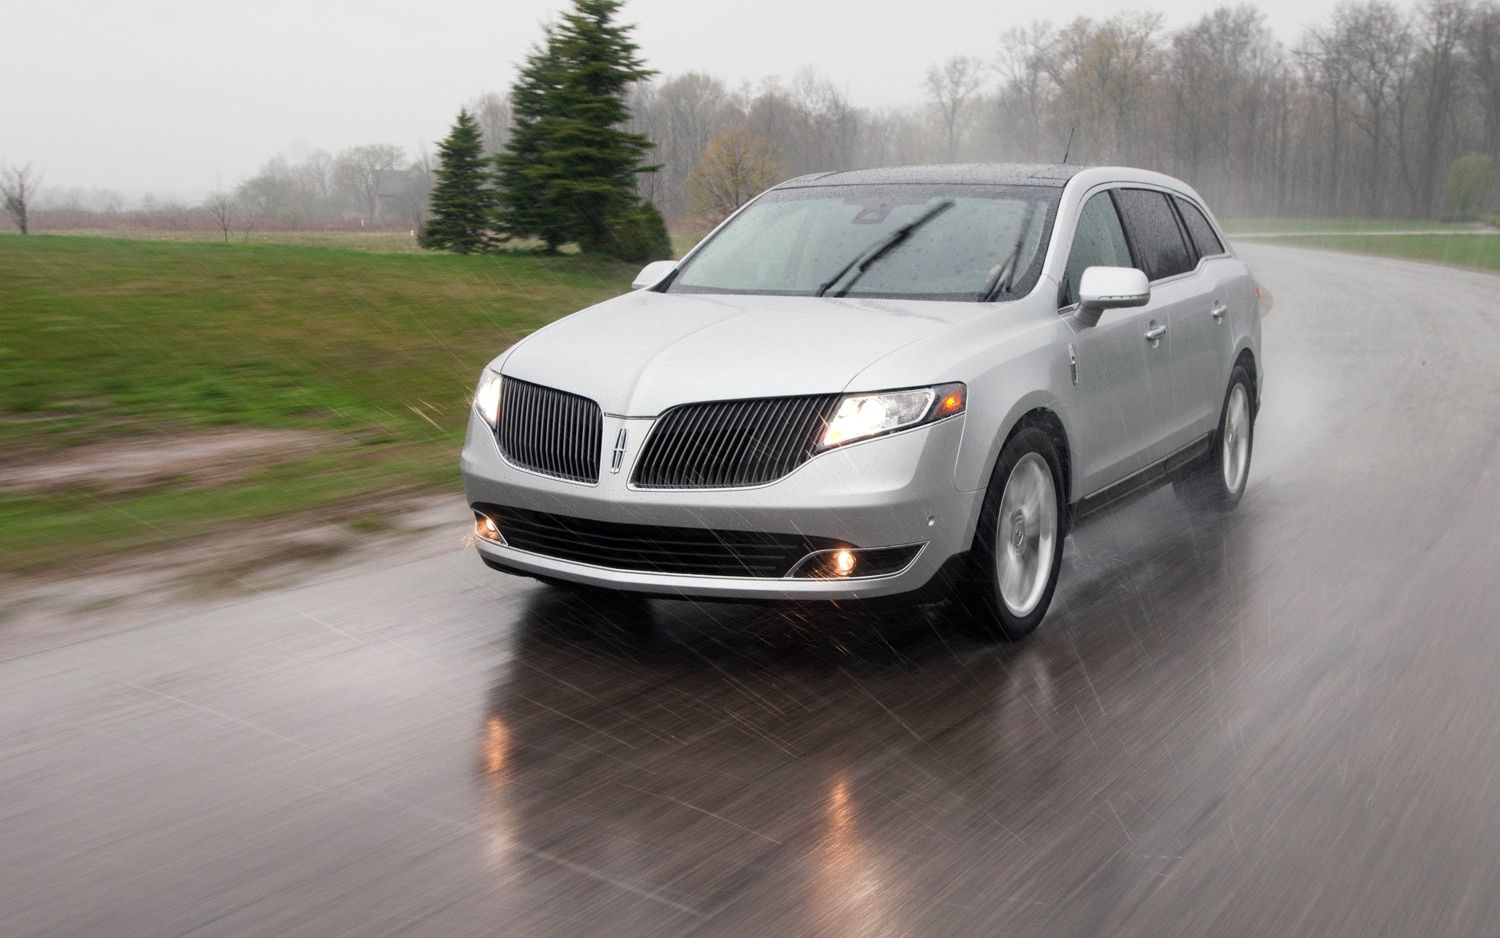 2013 Lincoln MKT Ecoboost Front Left View 51